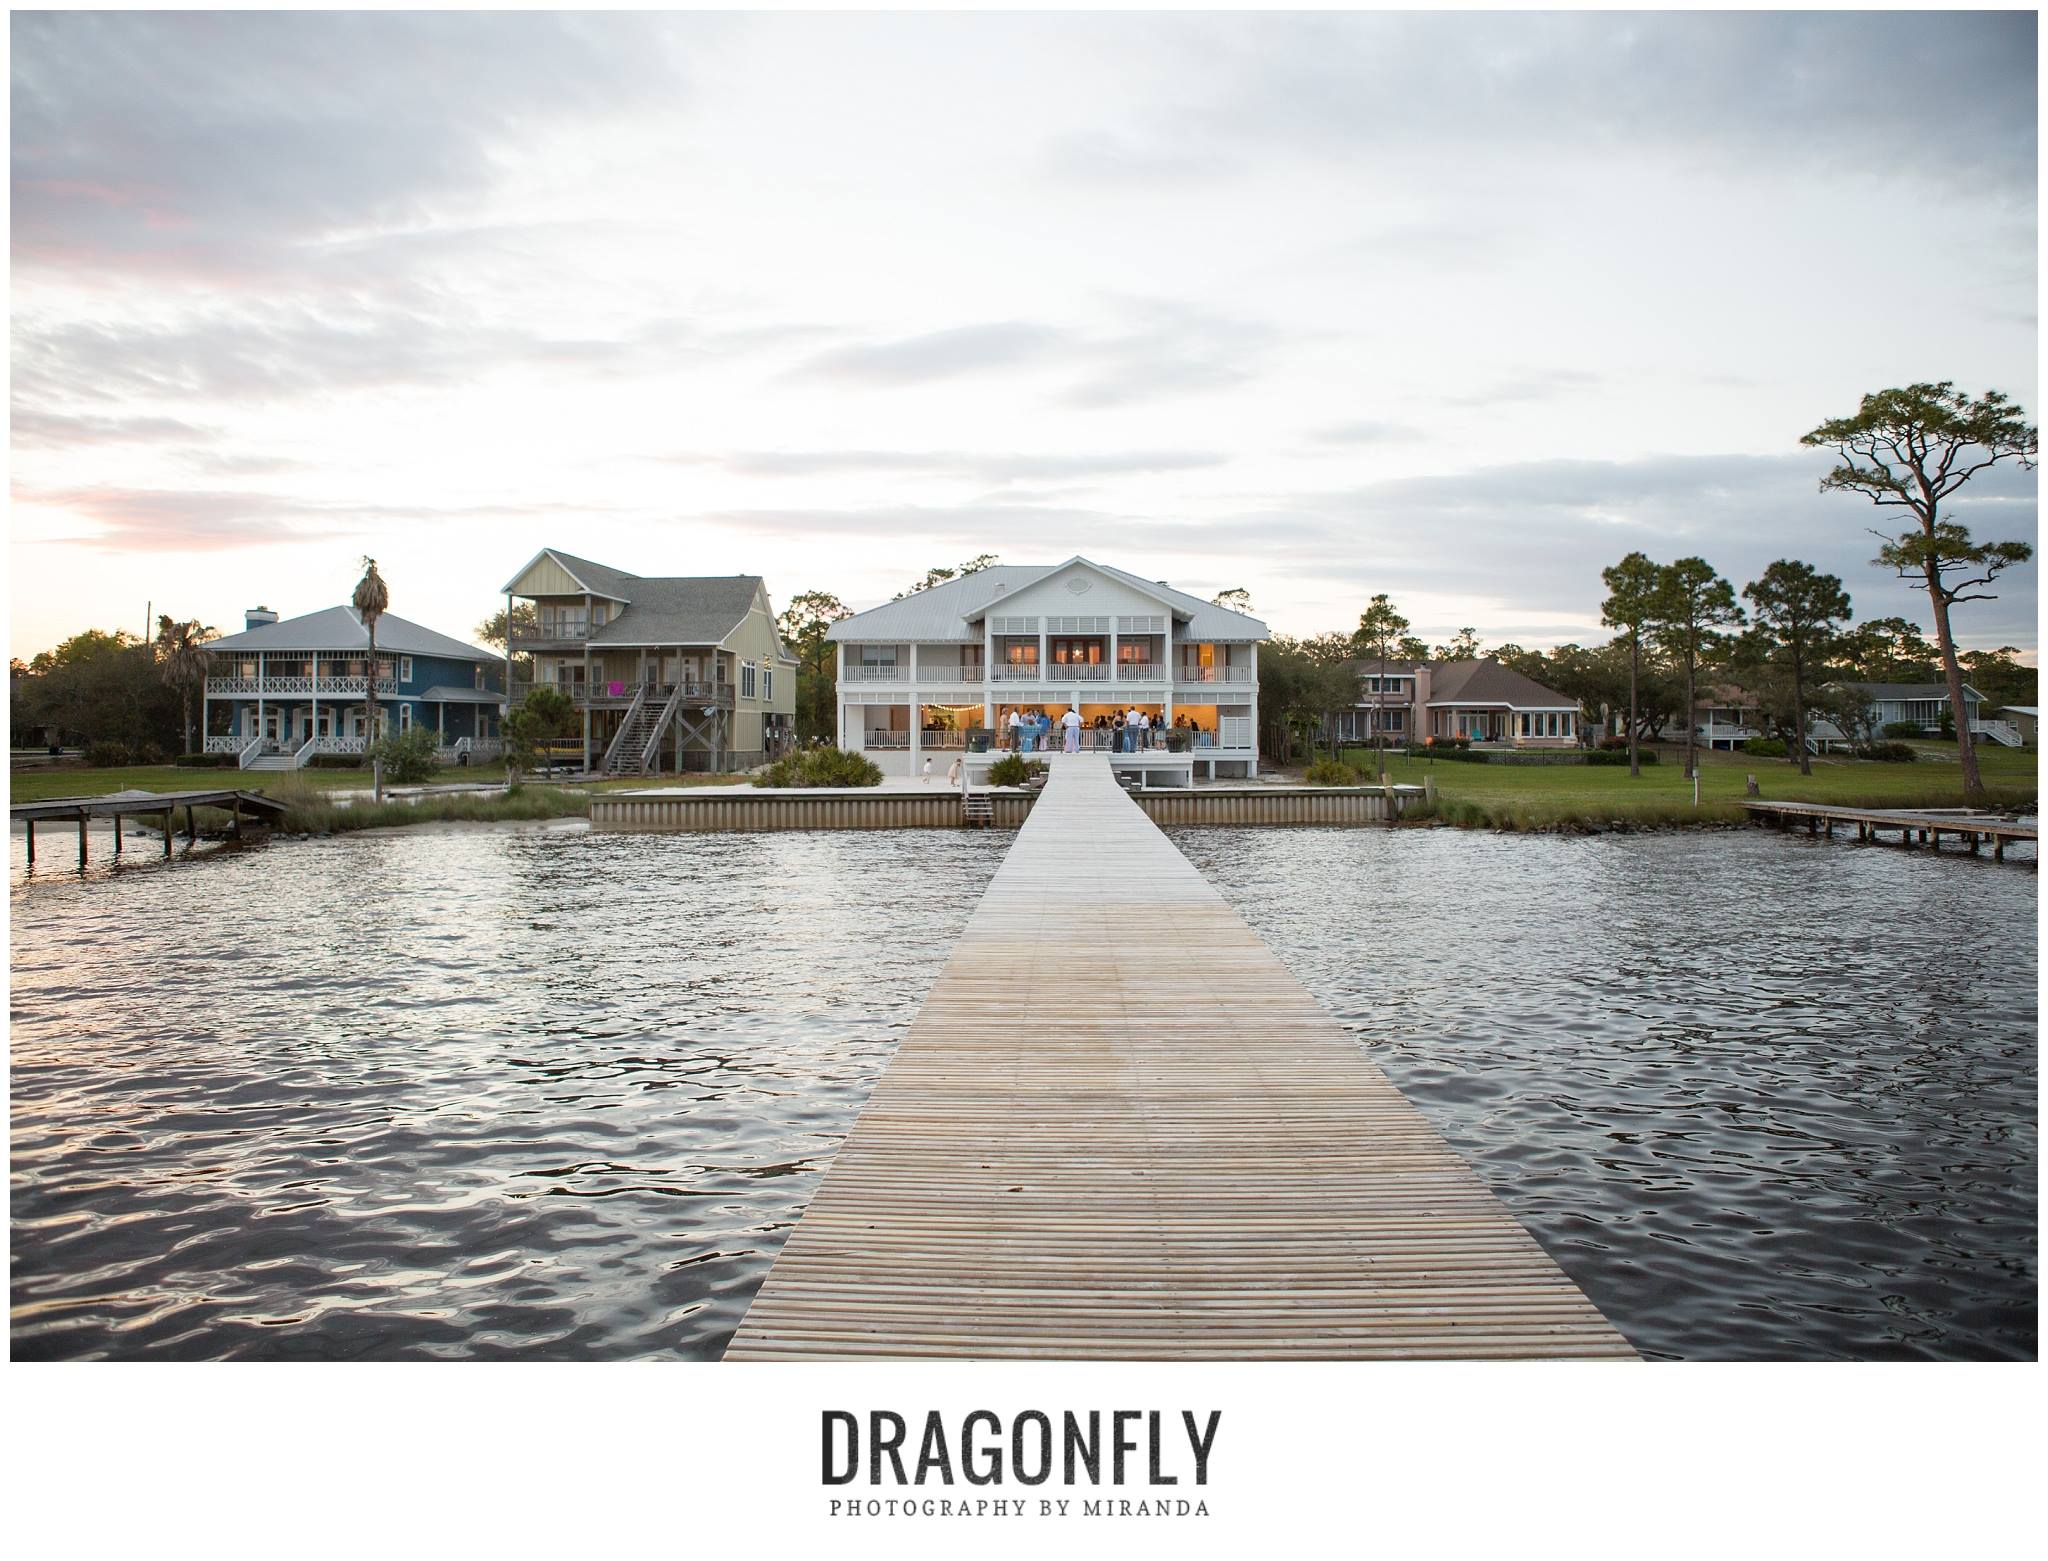 Beach Wedding Rentals Orange Beach Al Photos by Miranda @   Dragonfly Photography